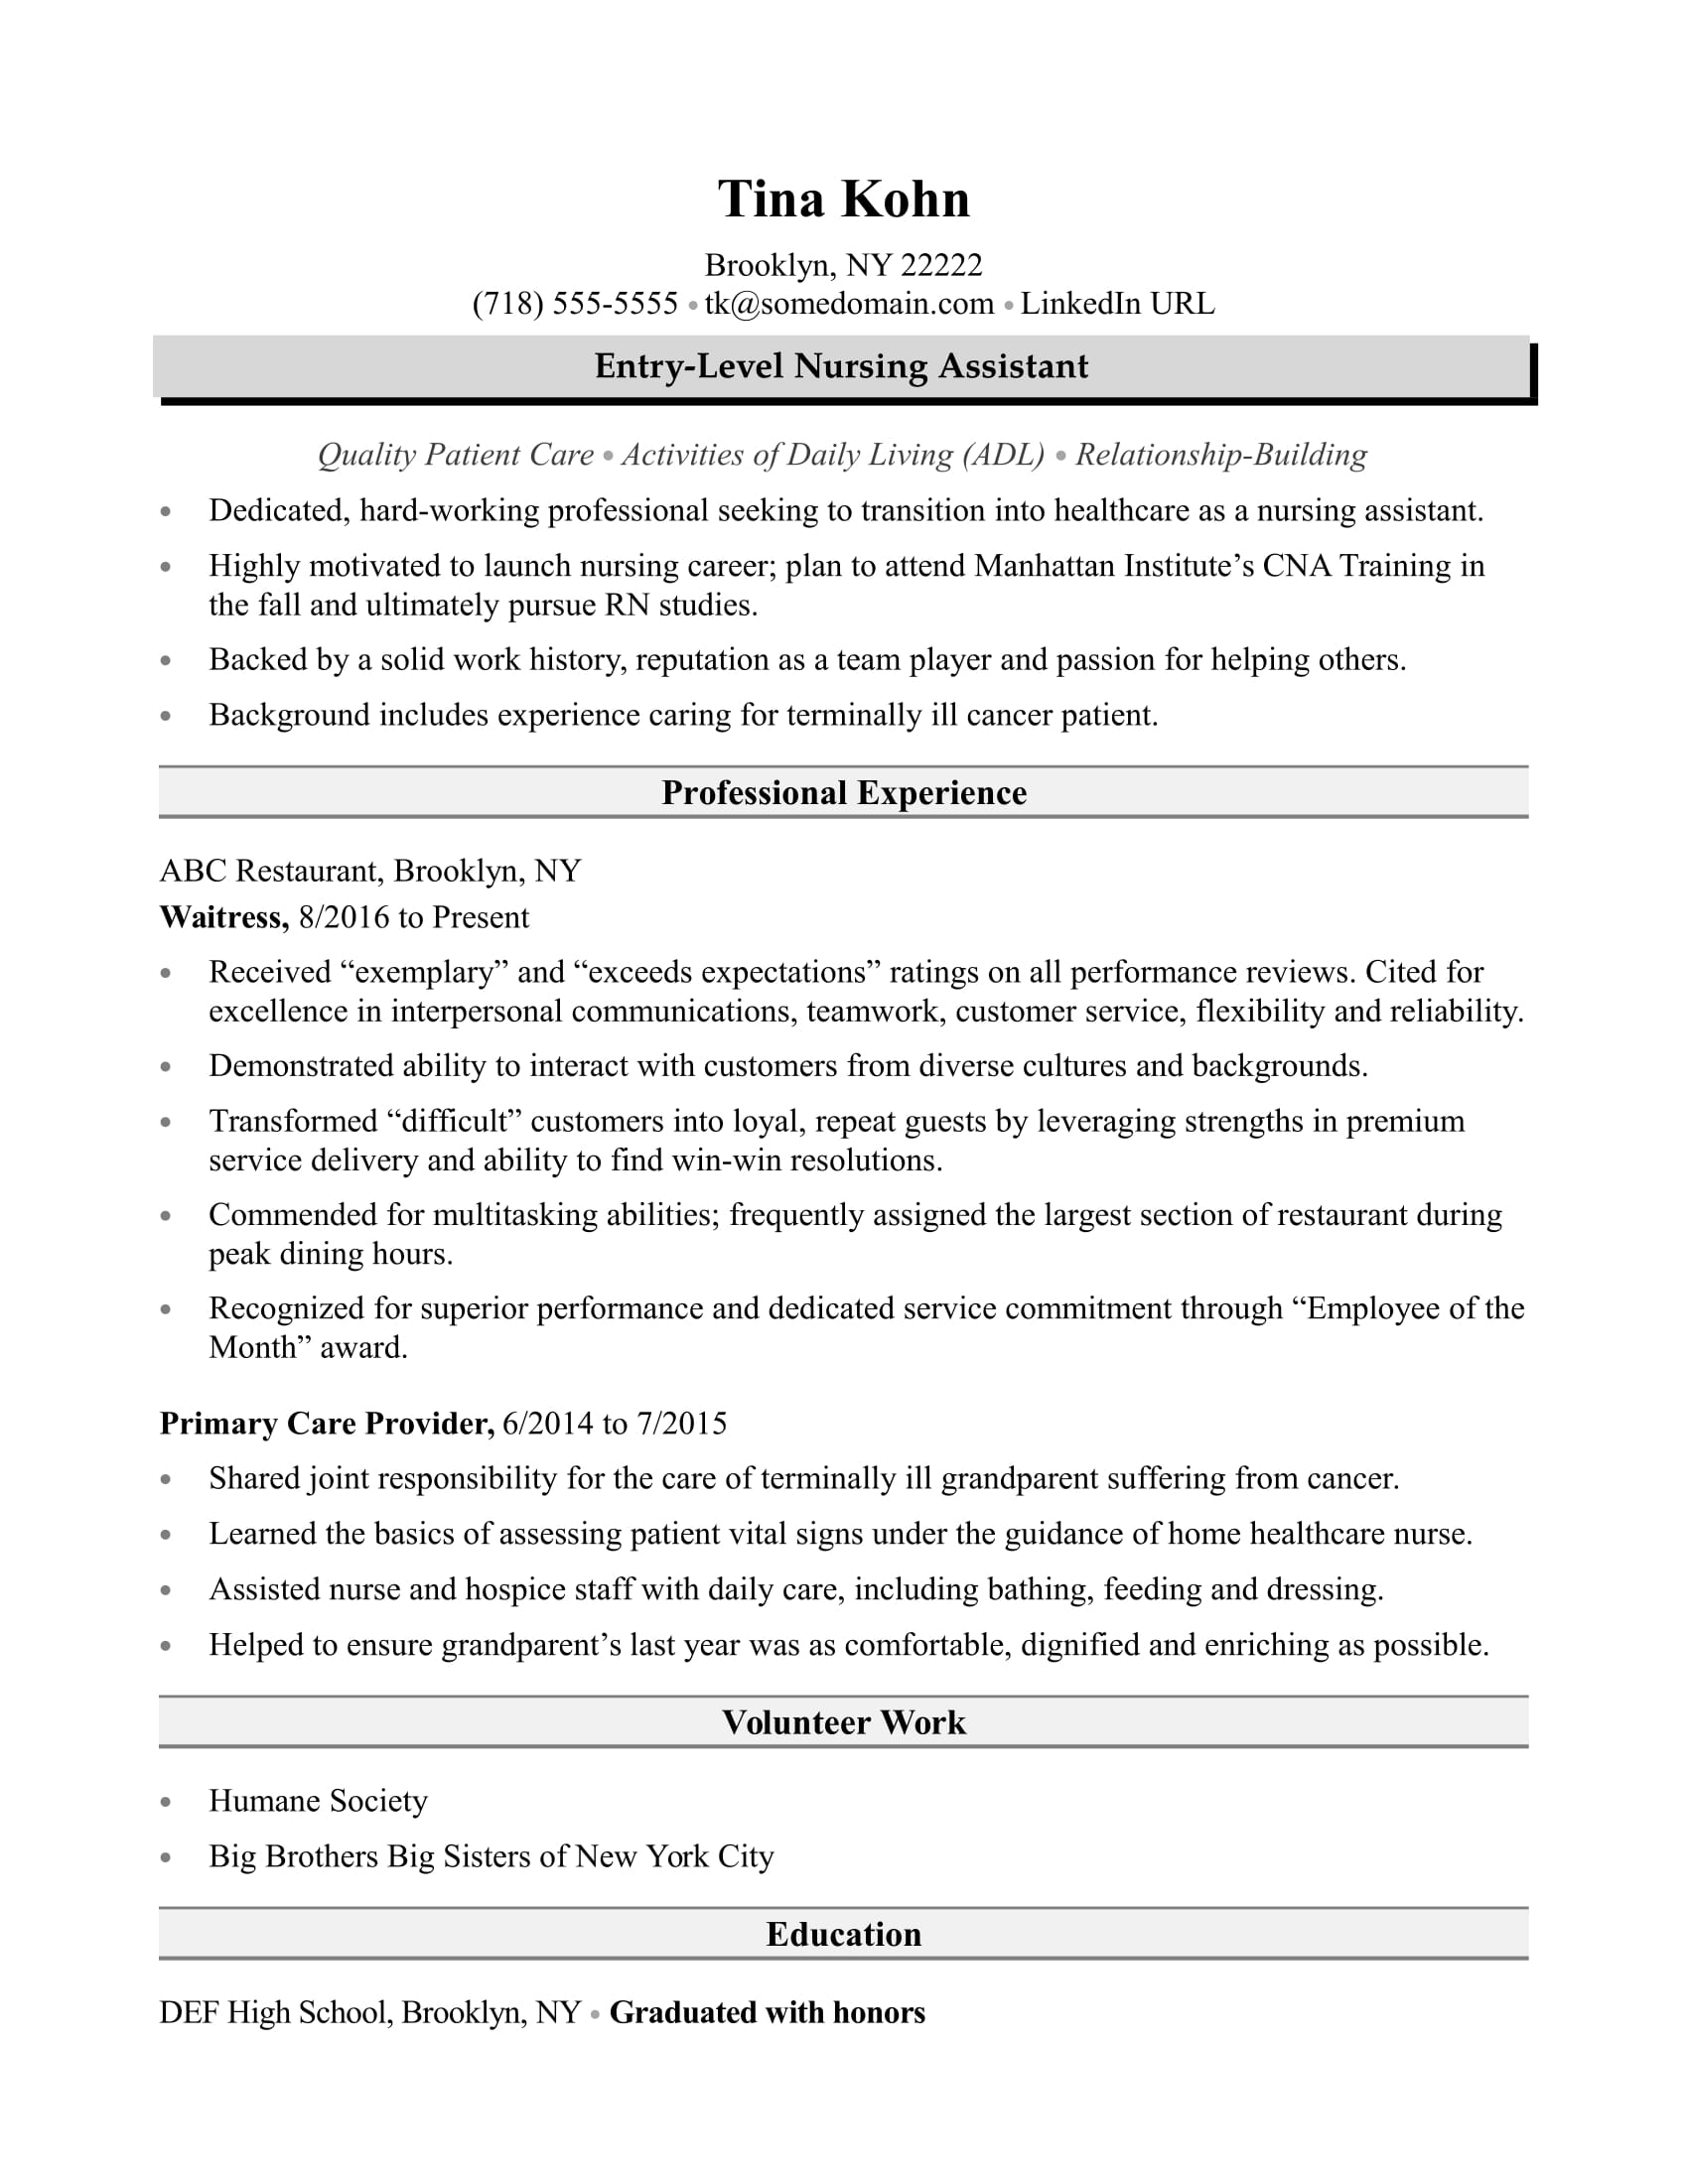 cna sample resume - Tower.dlugopisyreklamowe.co